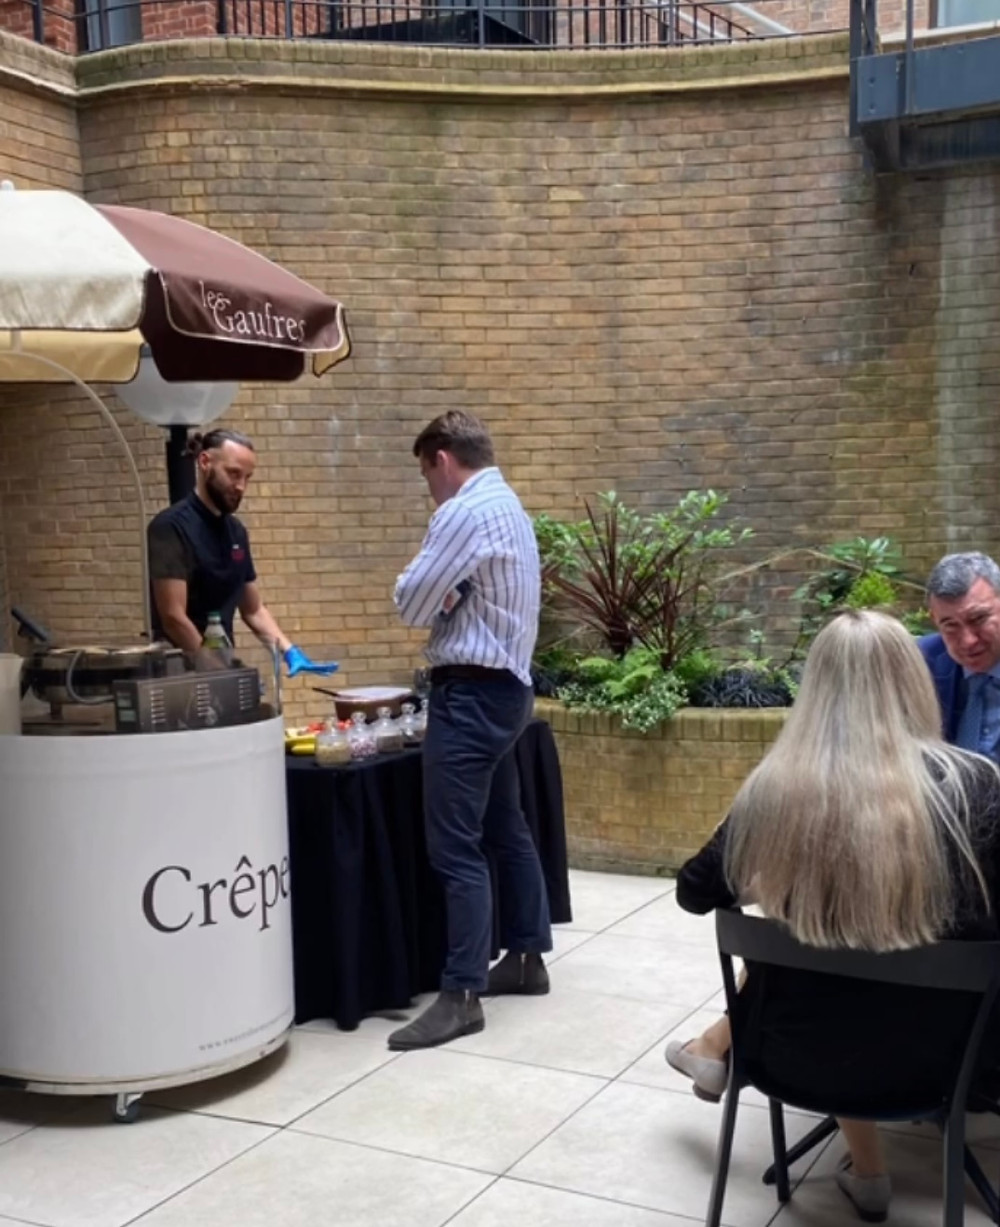 pancake stand hire London office